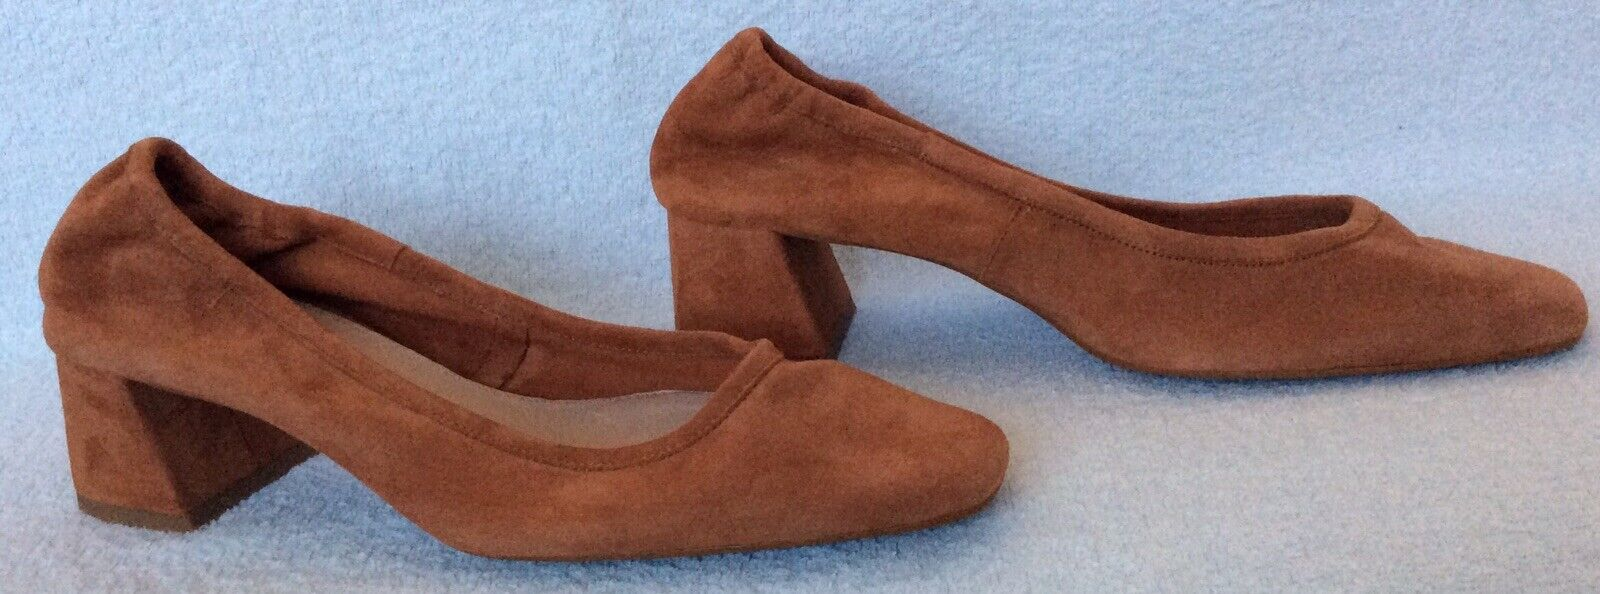 Topshop, Pumps, Heeled, Leather. Tan, faux suede. Stretch Size 5. Brand New